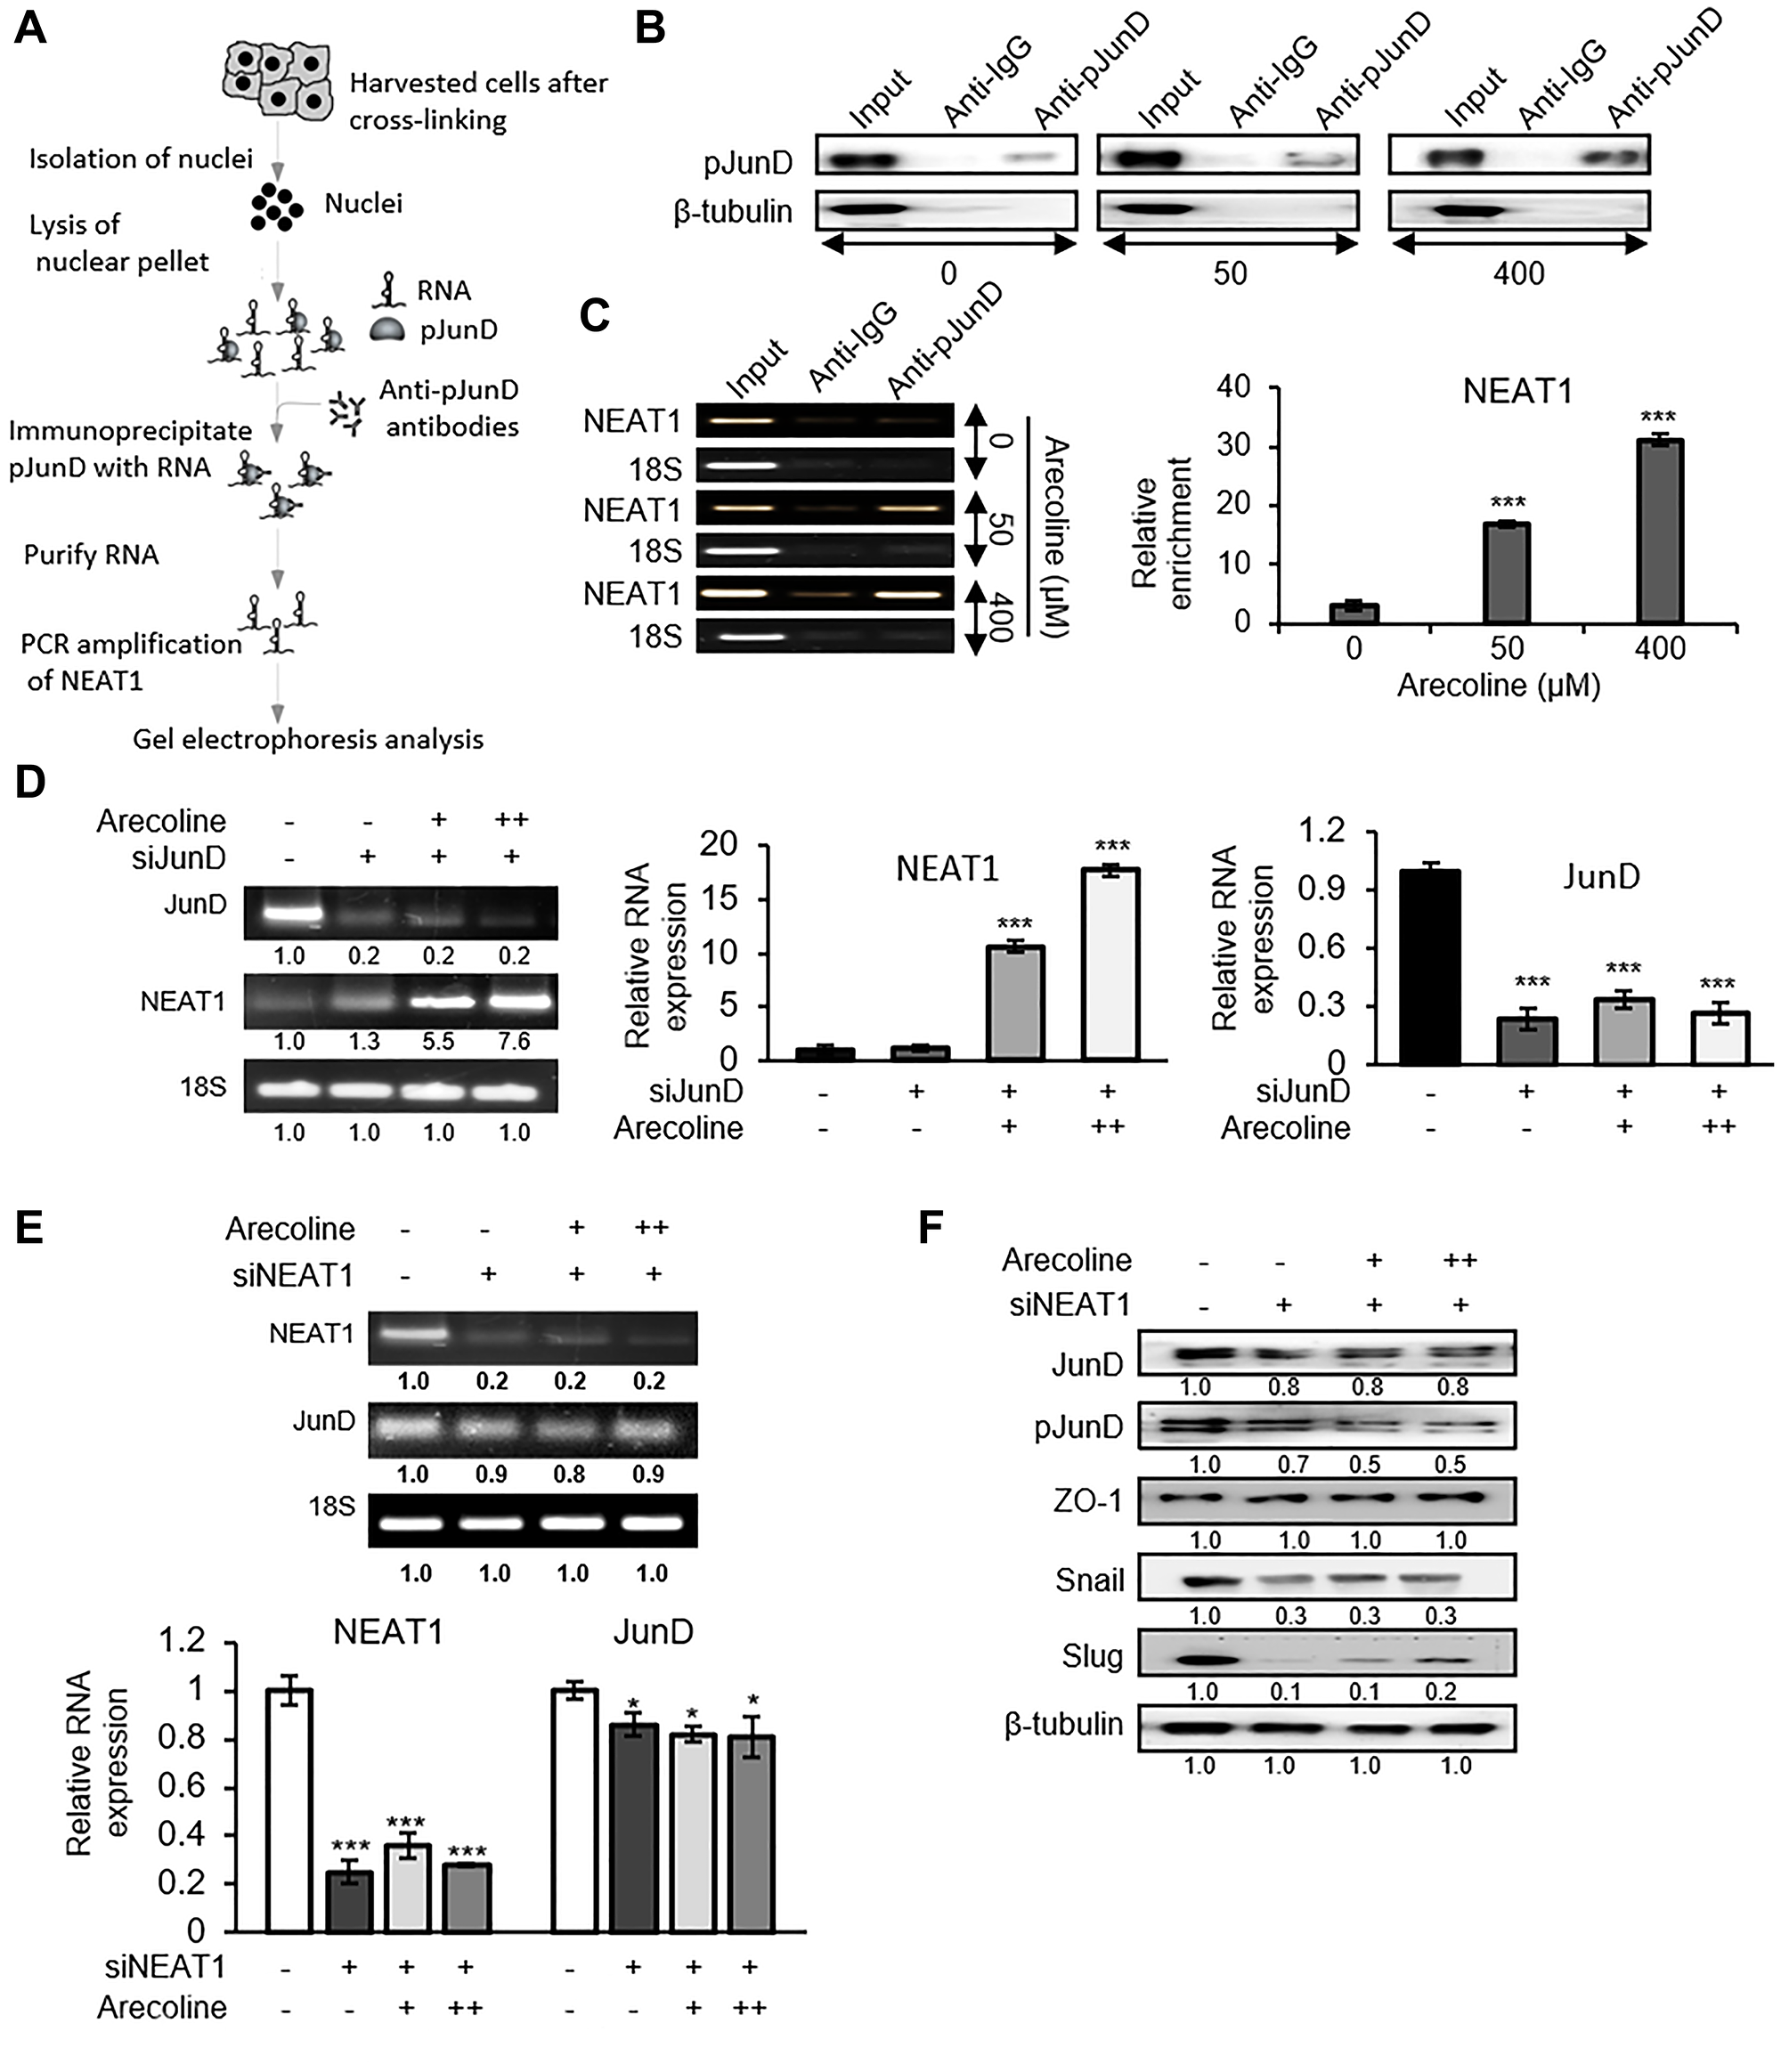 NEAT1 plays a pivotal role in JunD-mediated downregulation of ZO-1.